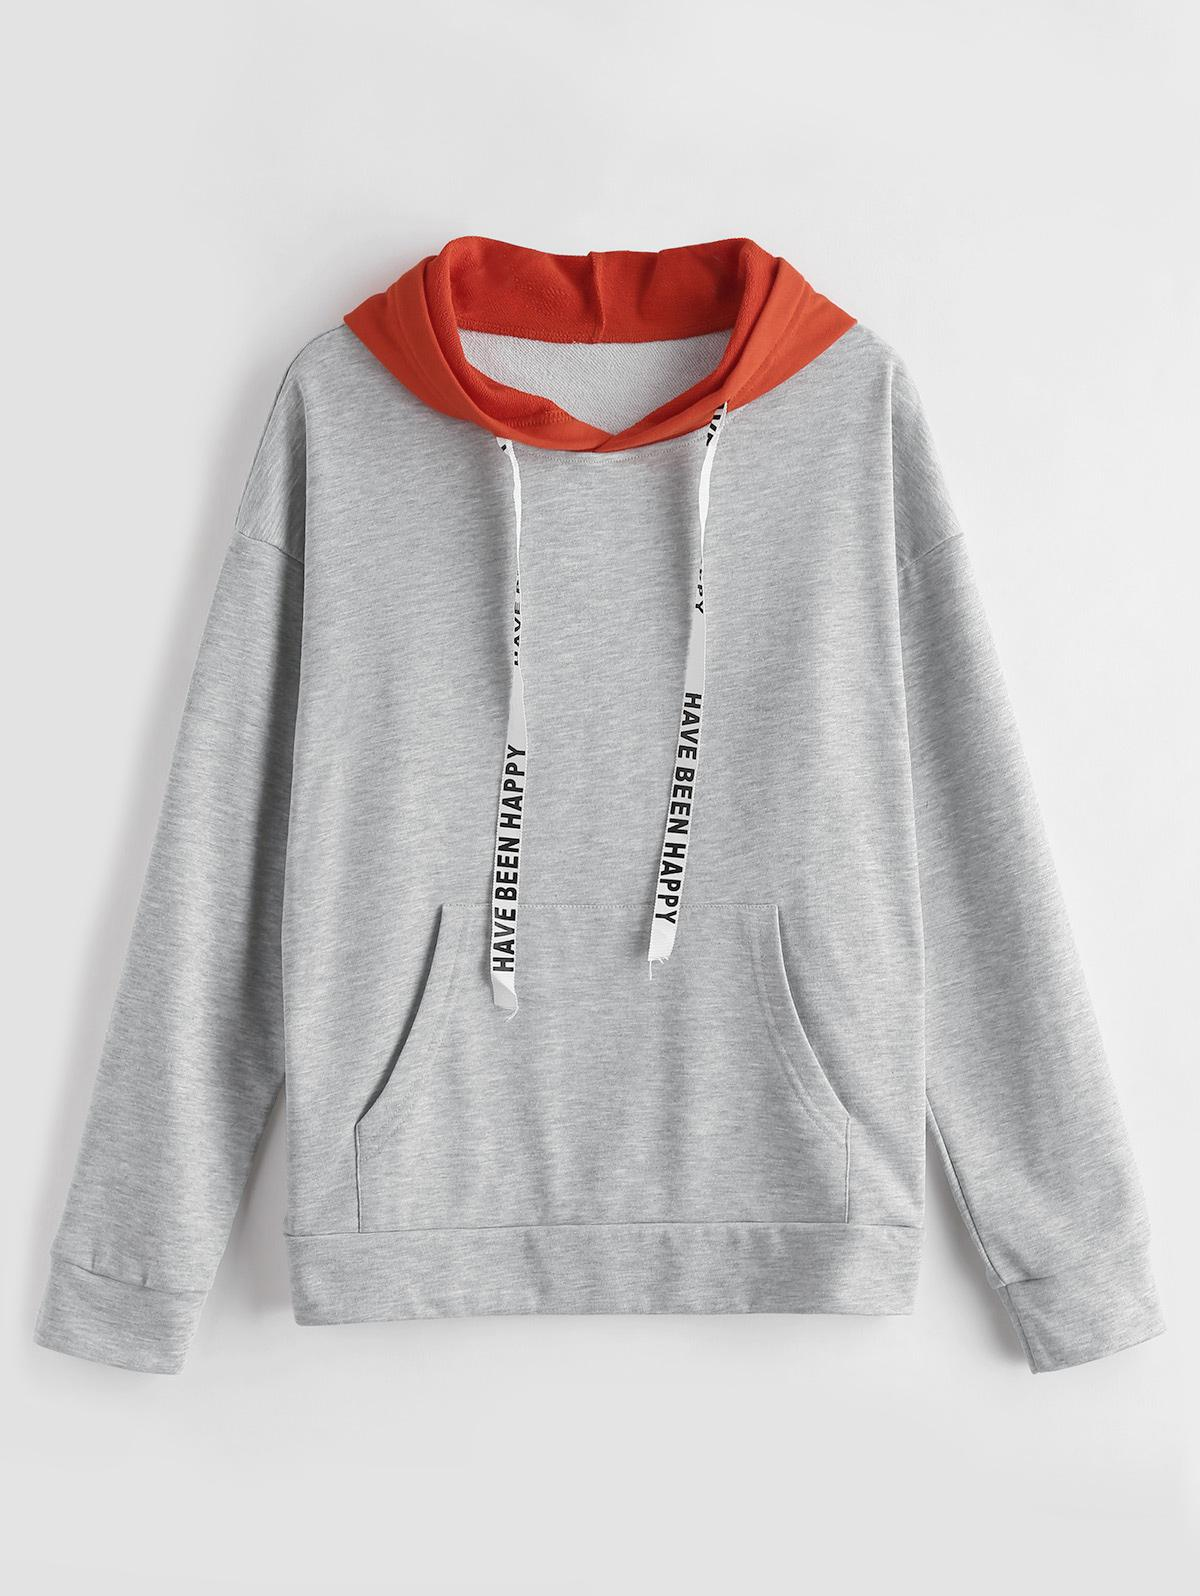 ZAFUL Two Tone Graphic Drawstring Hoodie